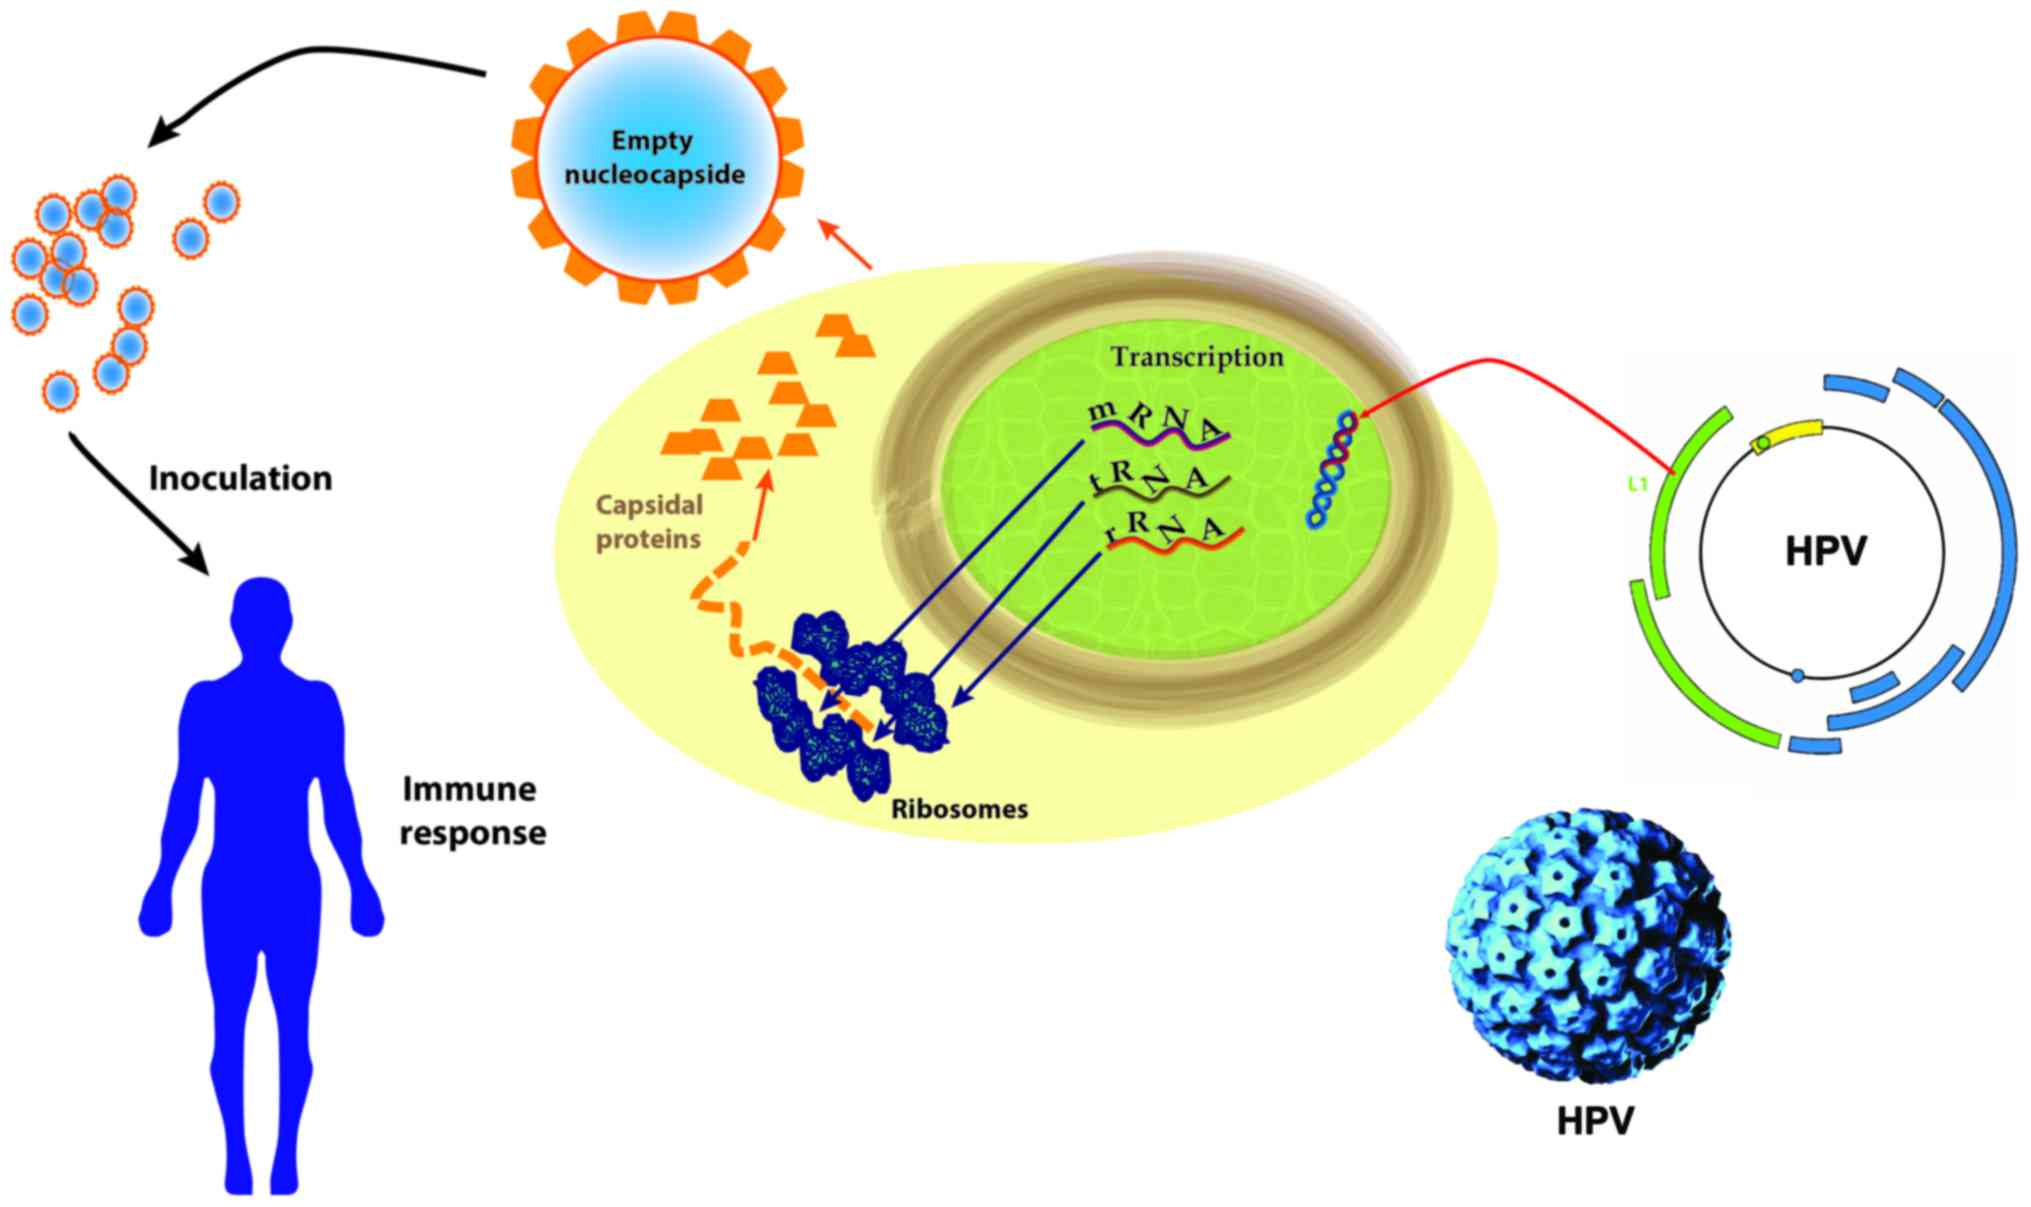 papillomavirus as the cause of diseases classified to other chapters